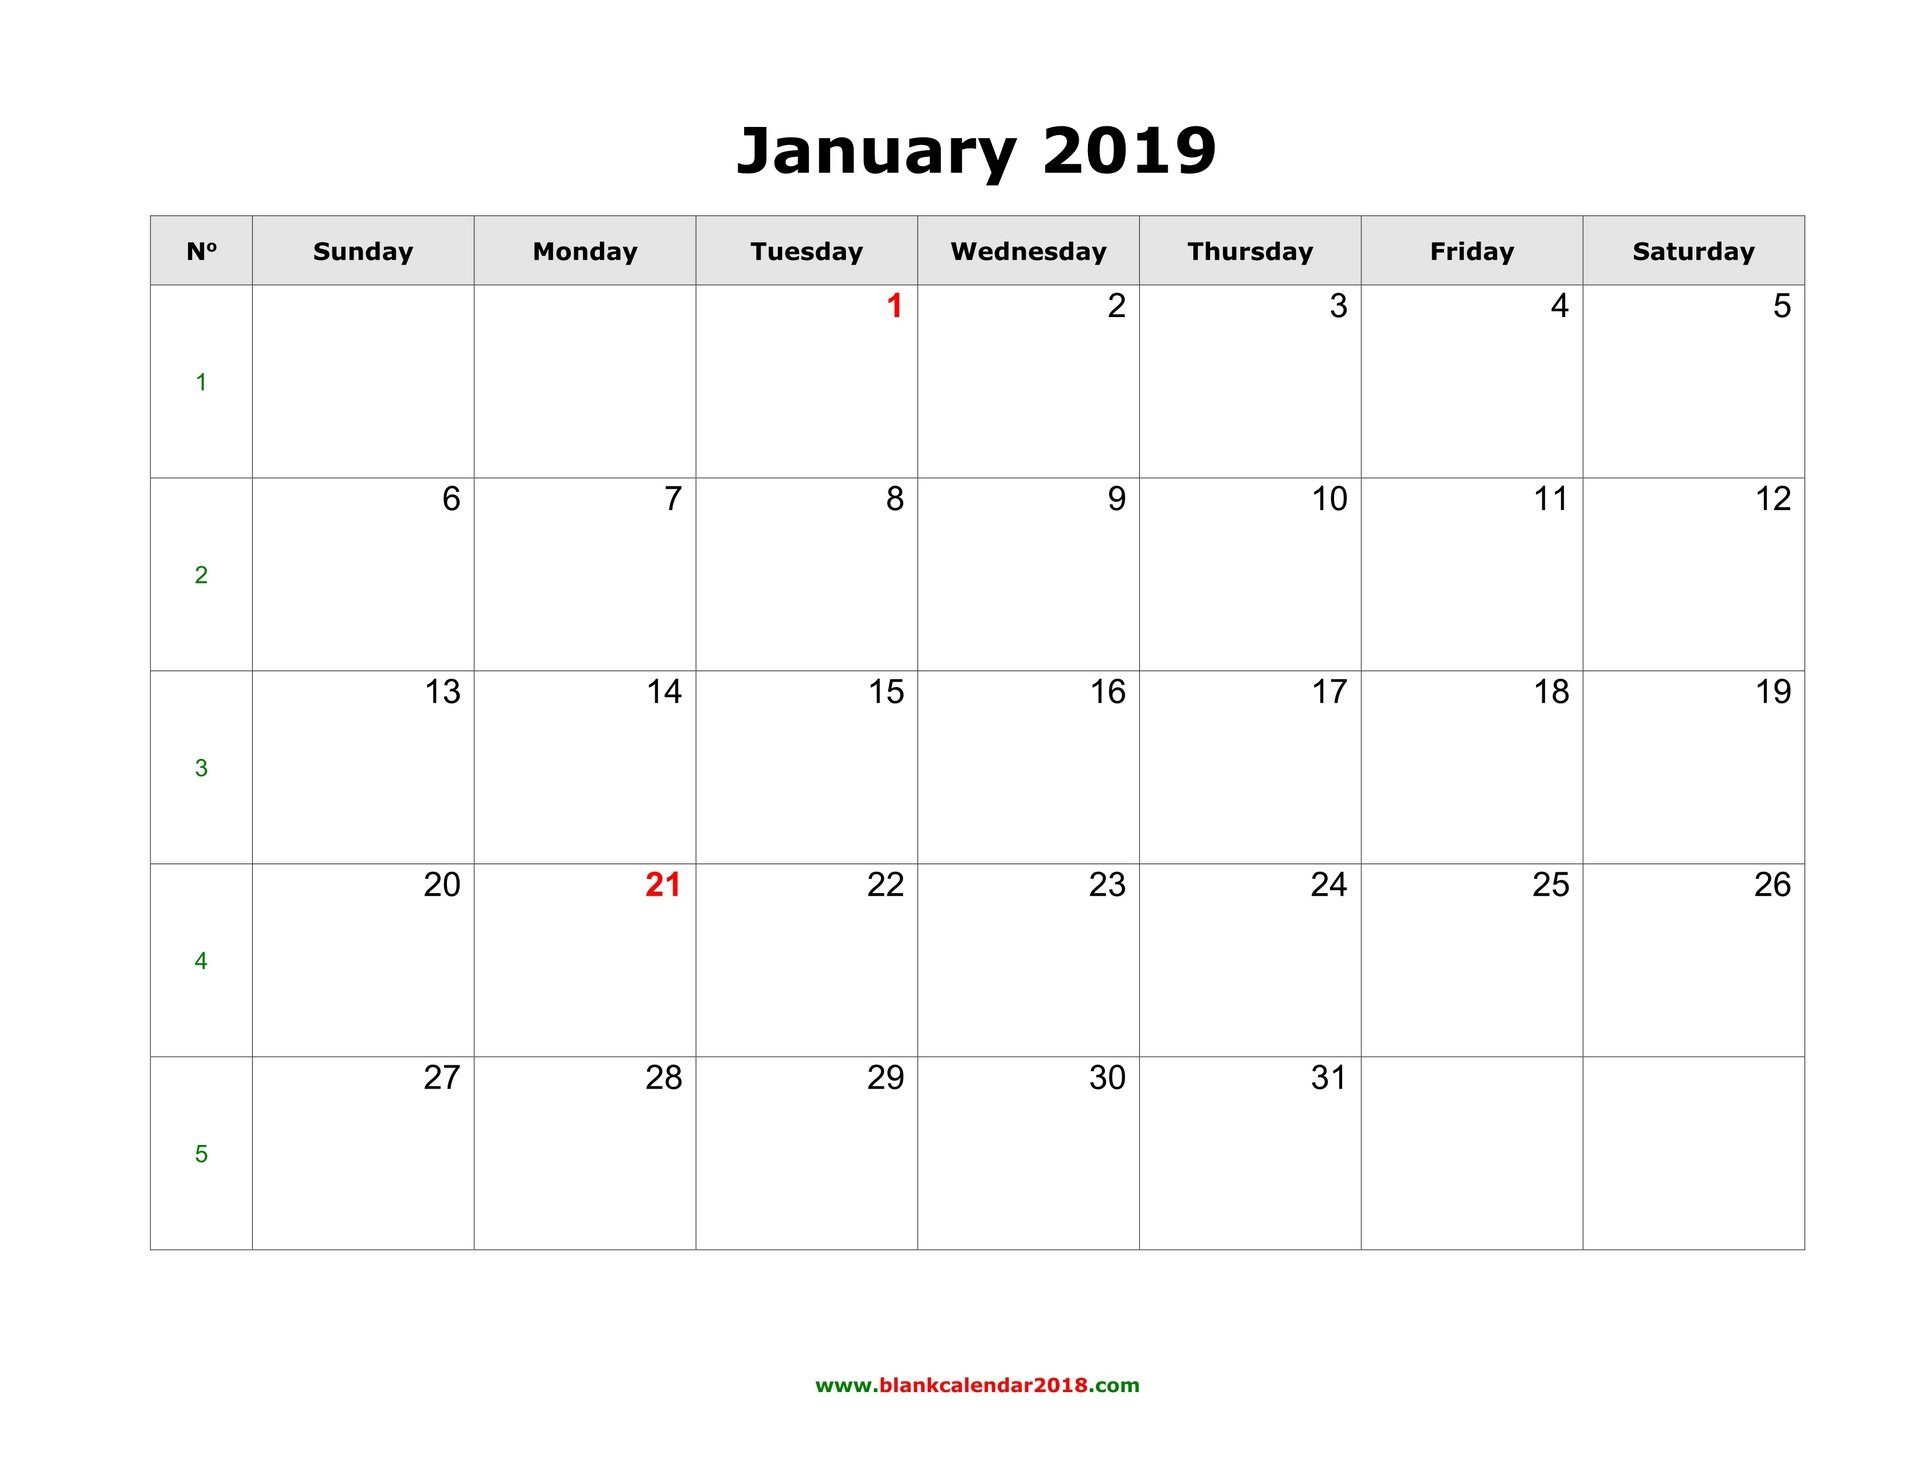 Blank Calendar For January 2019 Calendar 2019 Fill In